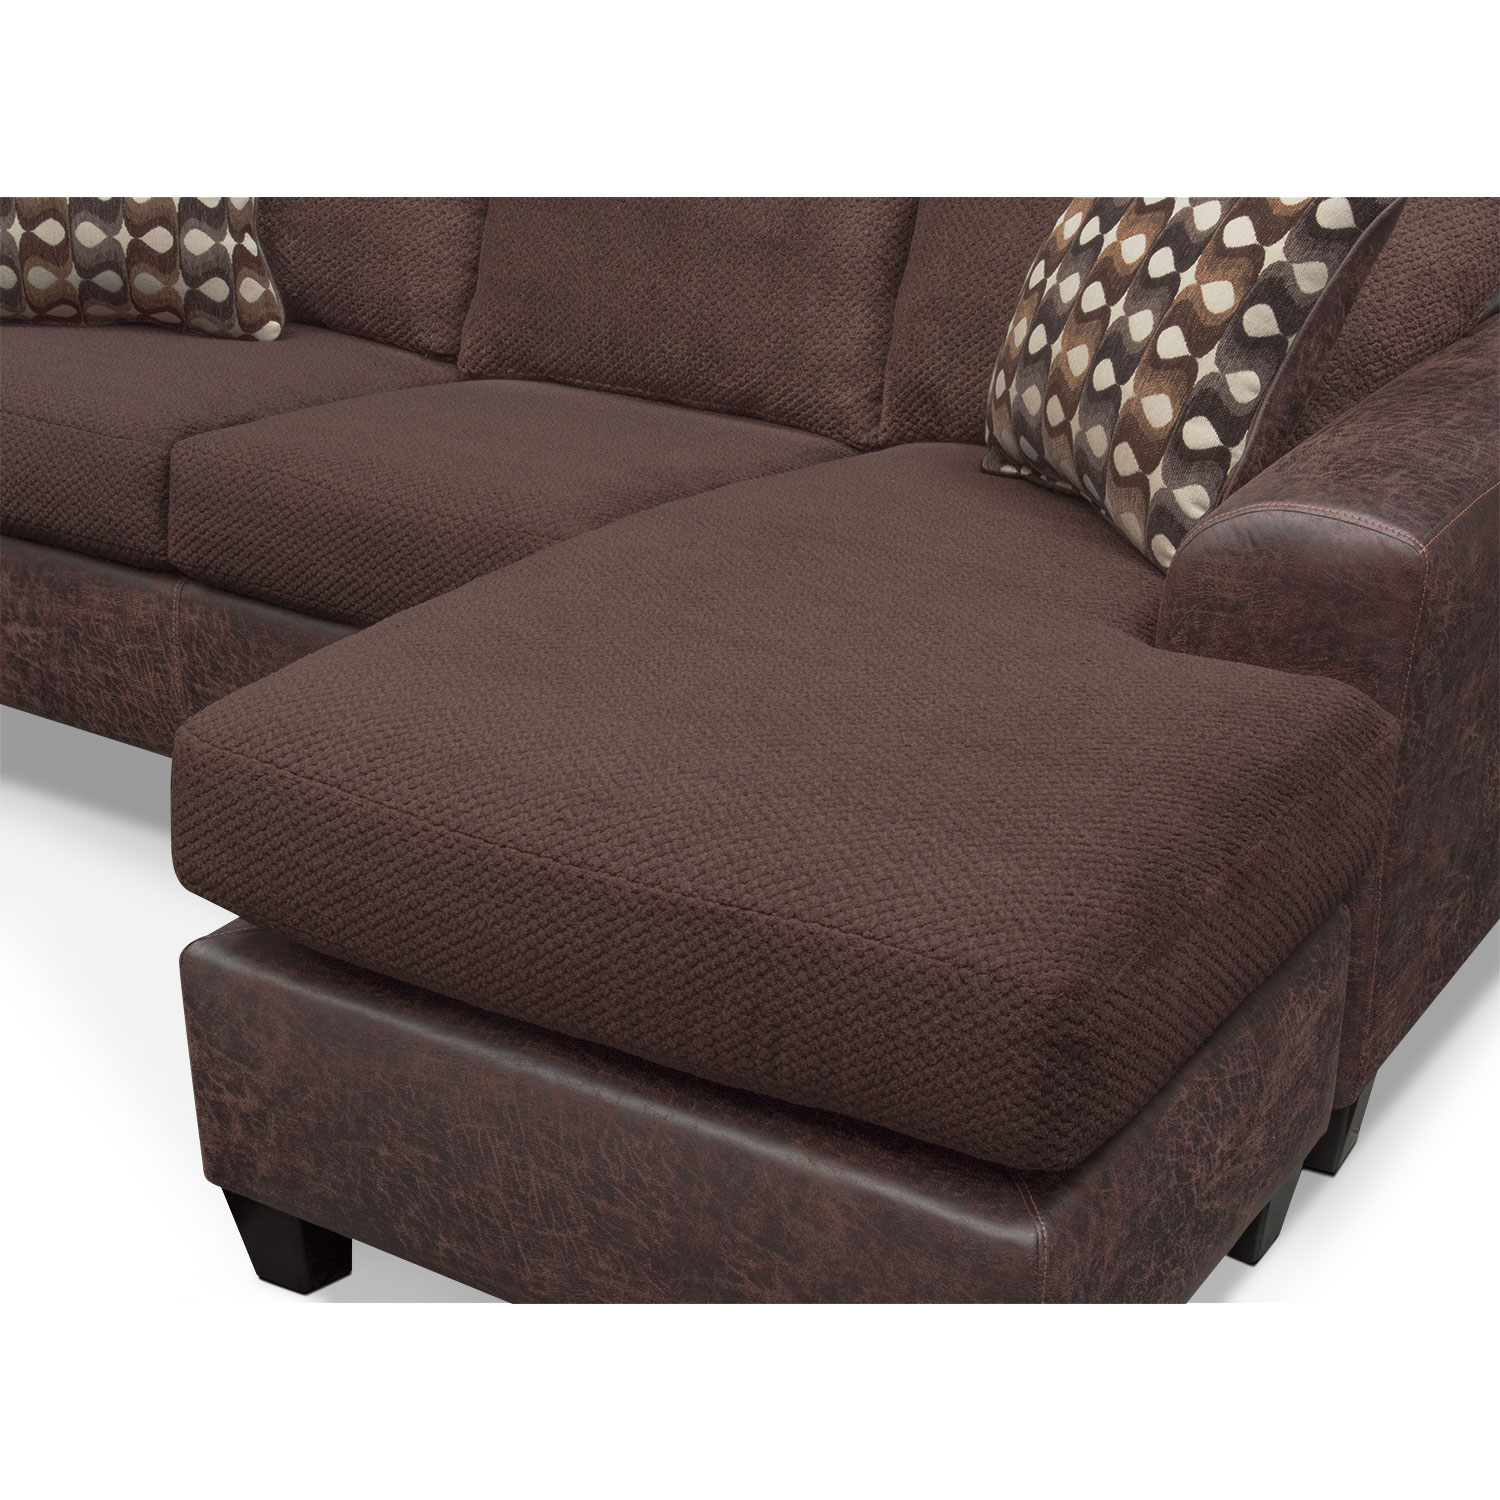 Brando sofa with chaise chocolate american signature for American signature couch